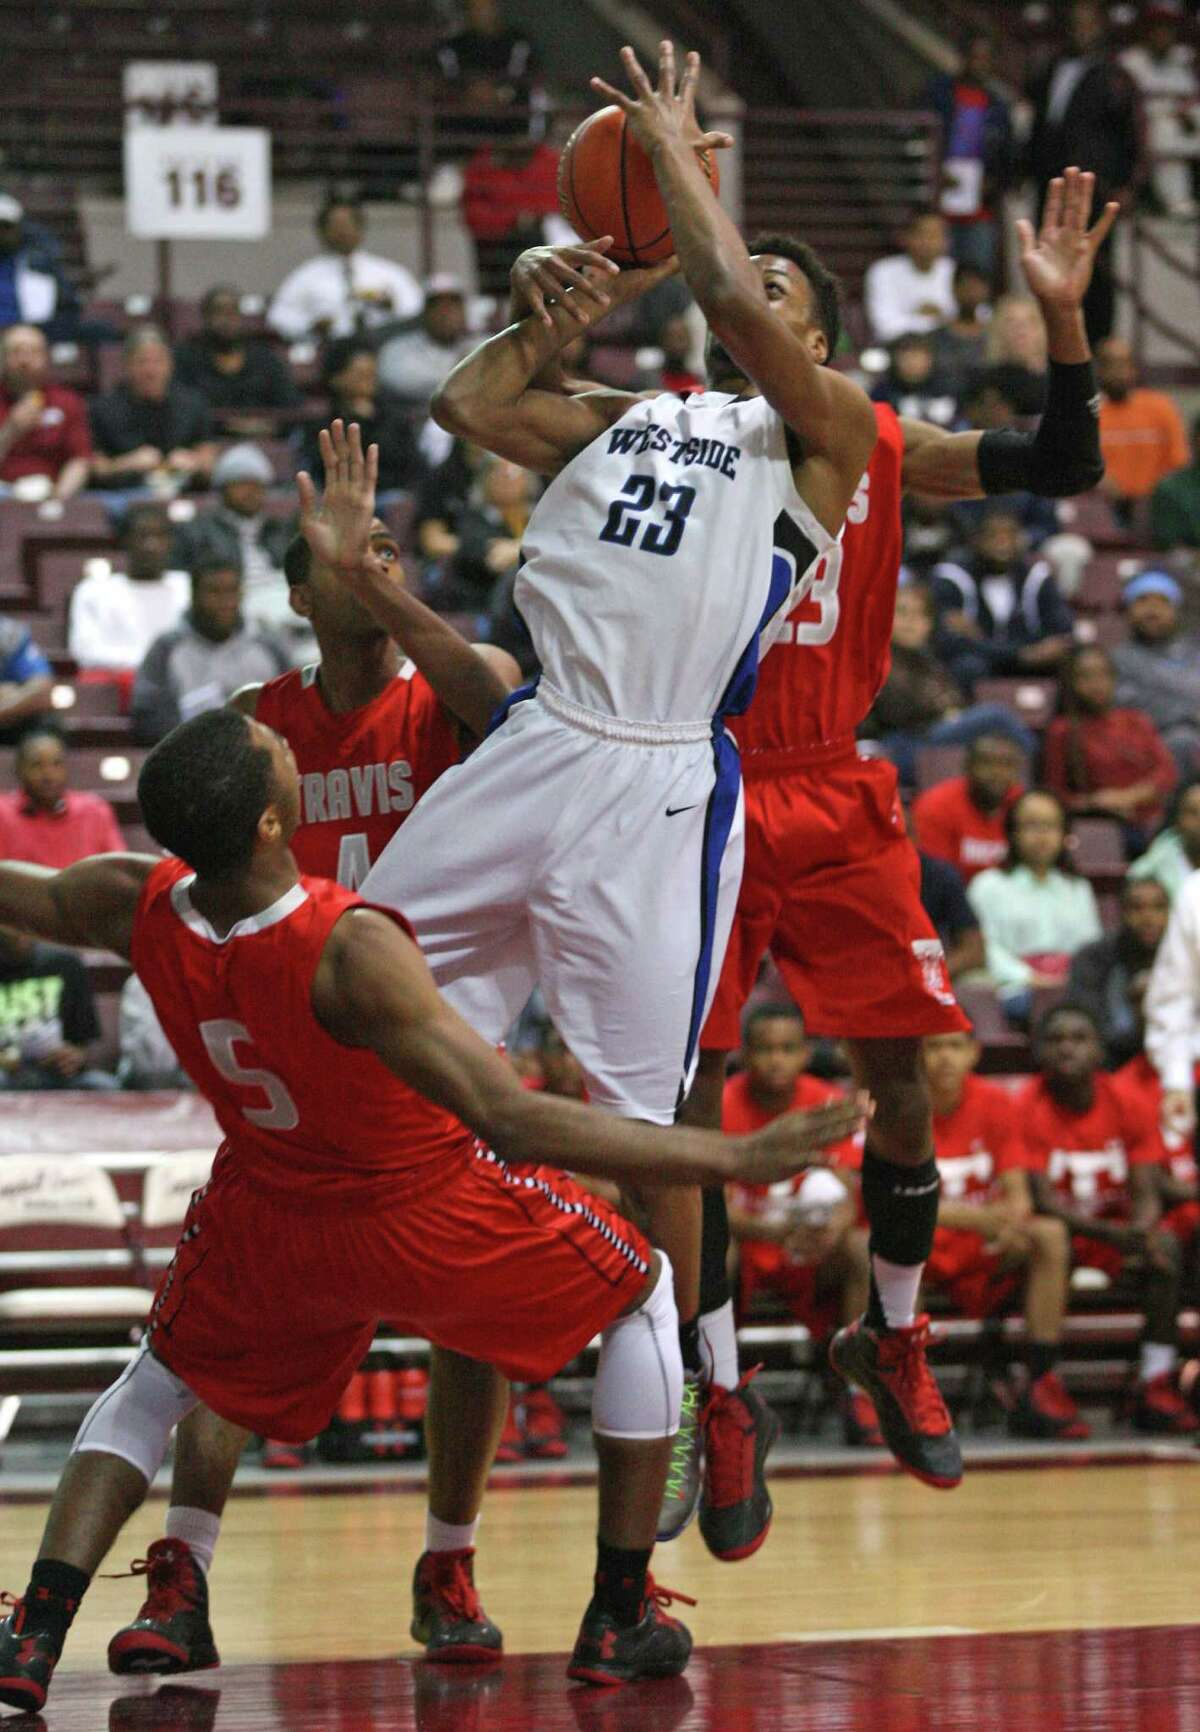 Westside's Franklin Iheanacho (23) shoots over Fort Bend Travis' Andrew Harrison (5) during the first half of a 5A Region III high school playoff basketball game, Friday, March 1, 2013 at the Campbell Center in Houston, TX. (Photo: Eric Christian Smith/For the Houston Chronicle)